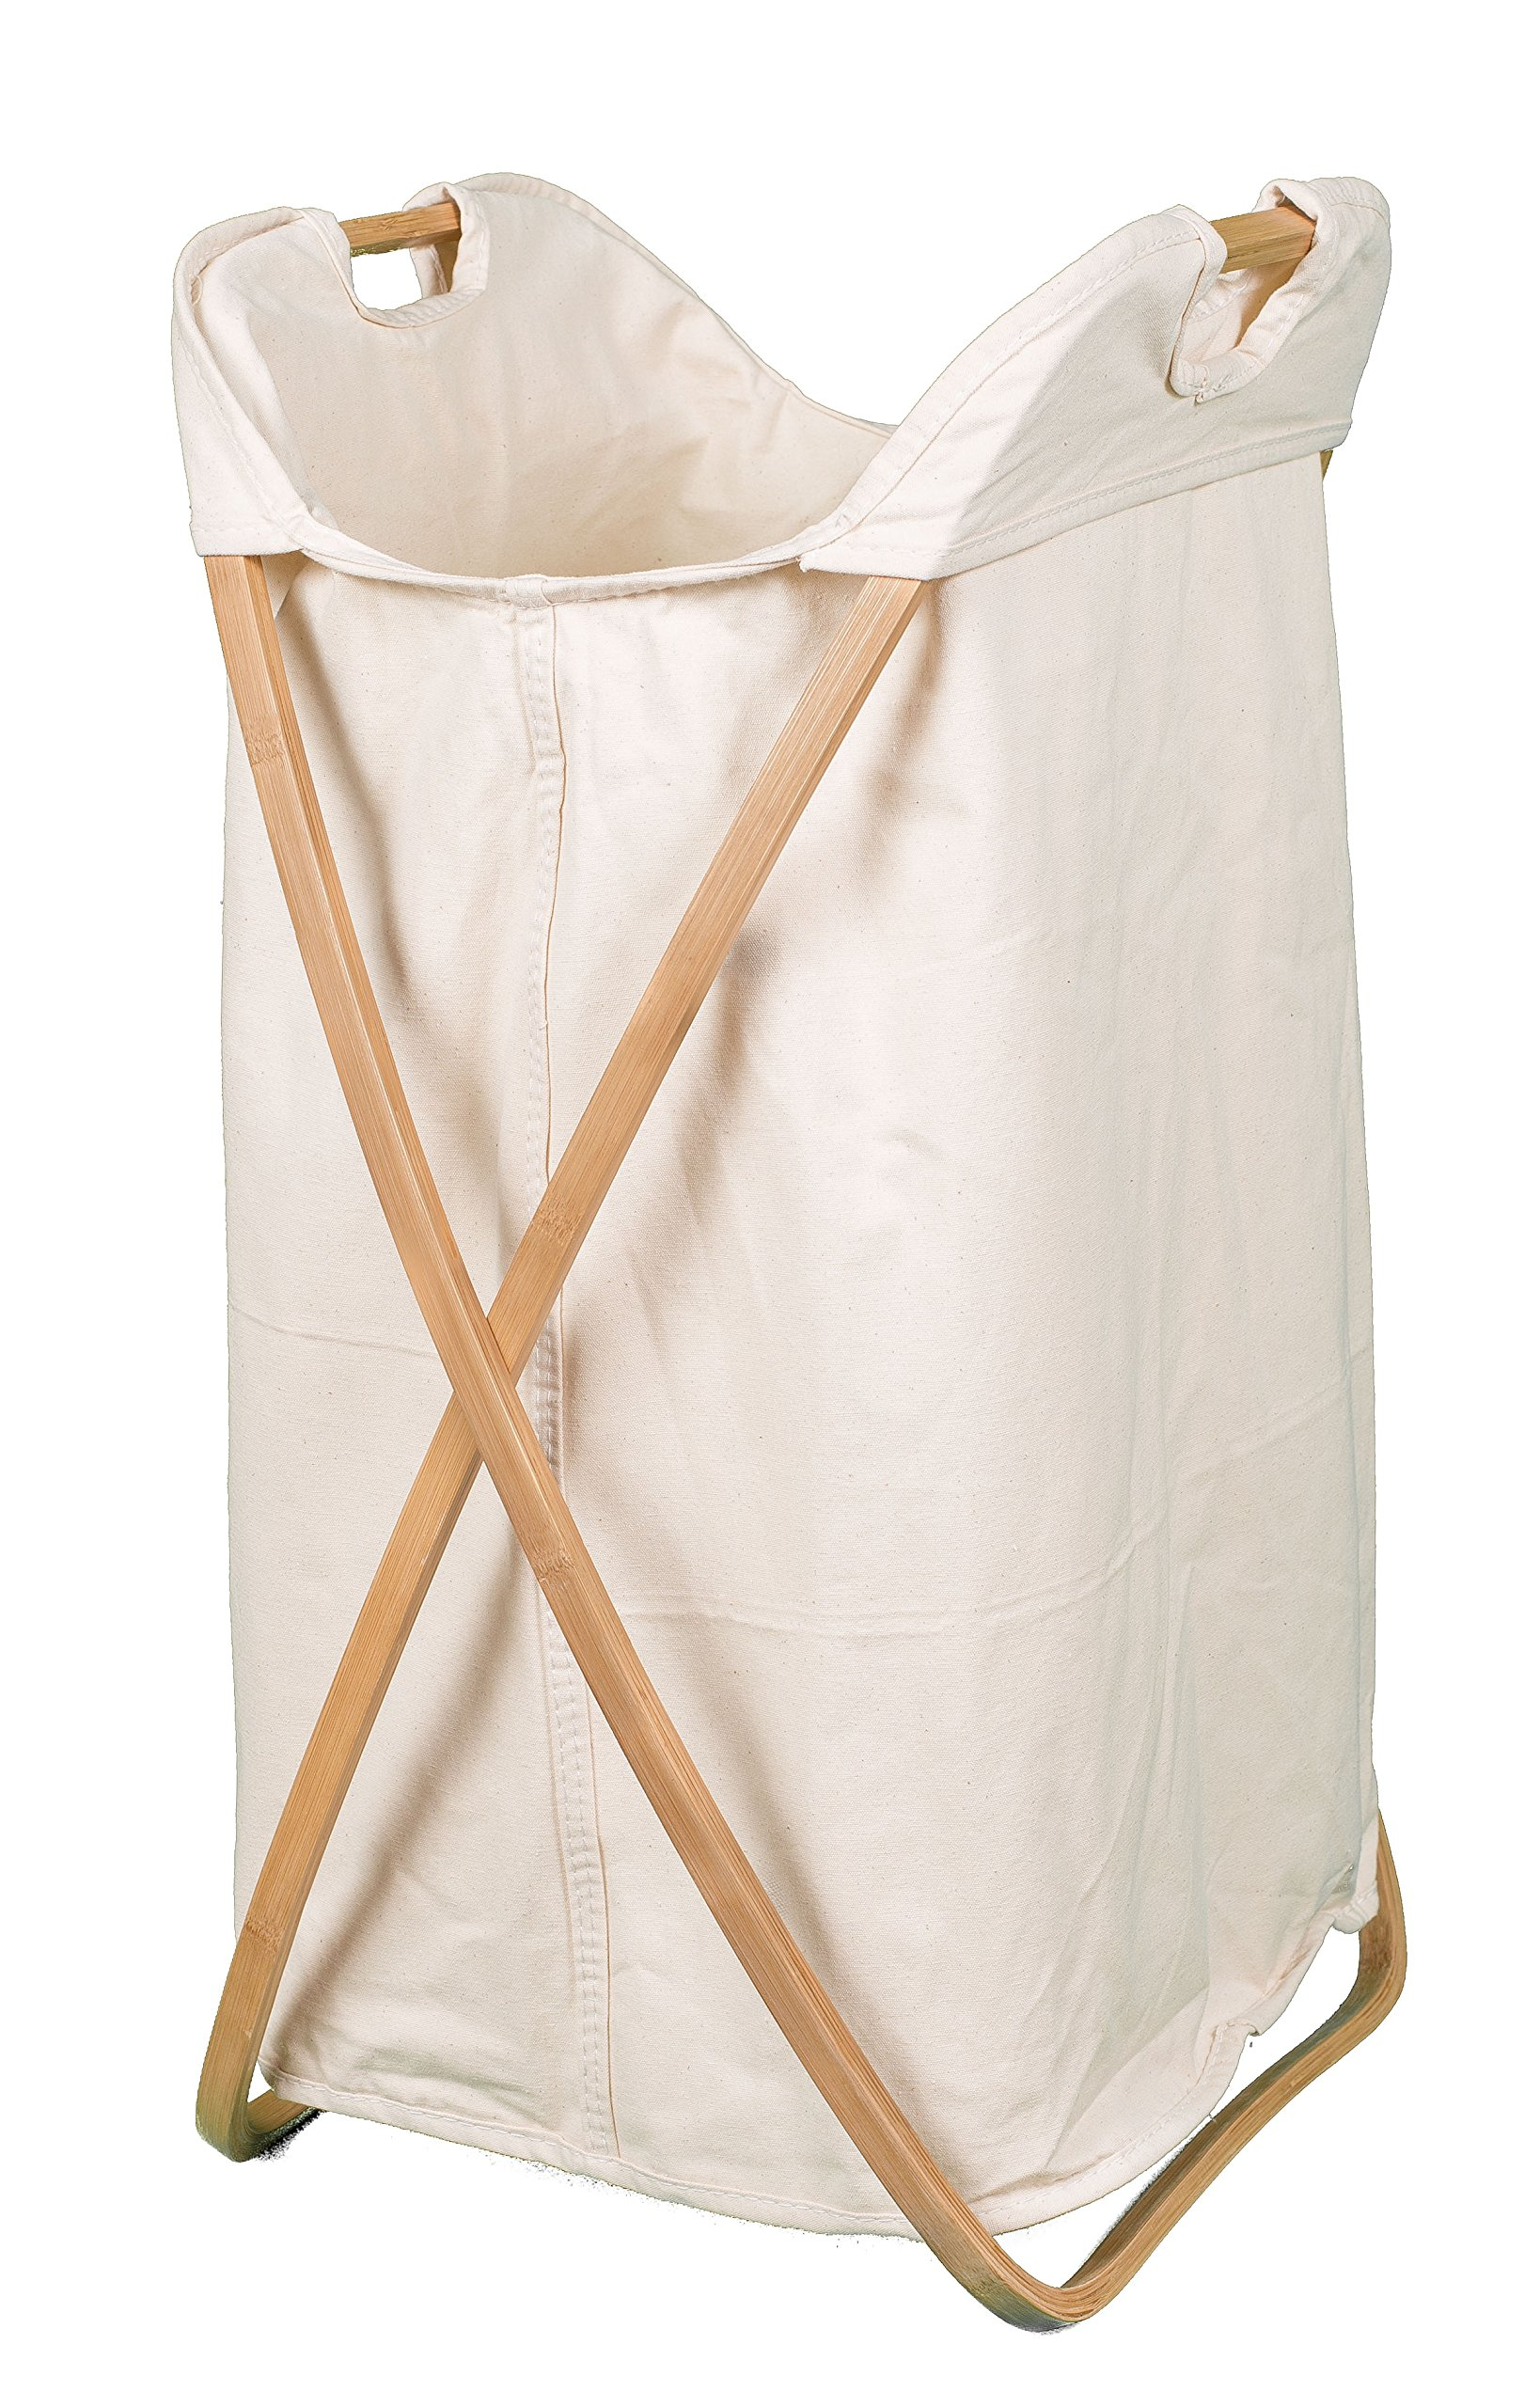 BirdRock Home Folding Butterfly Bamboo Hamper | Made of Natural Bamboo | Includes Machine Washable Cotton Canvas Liner